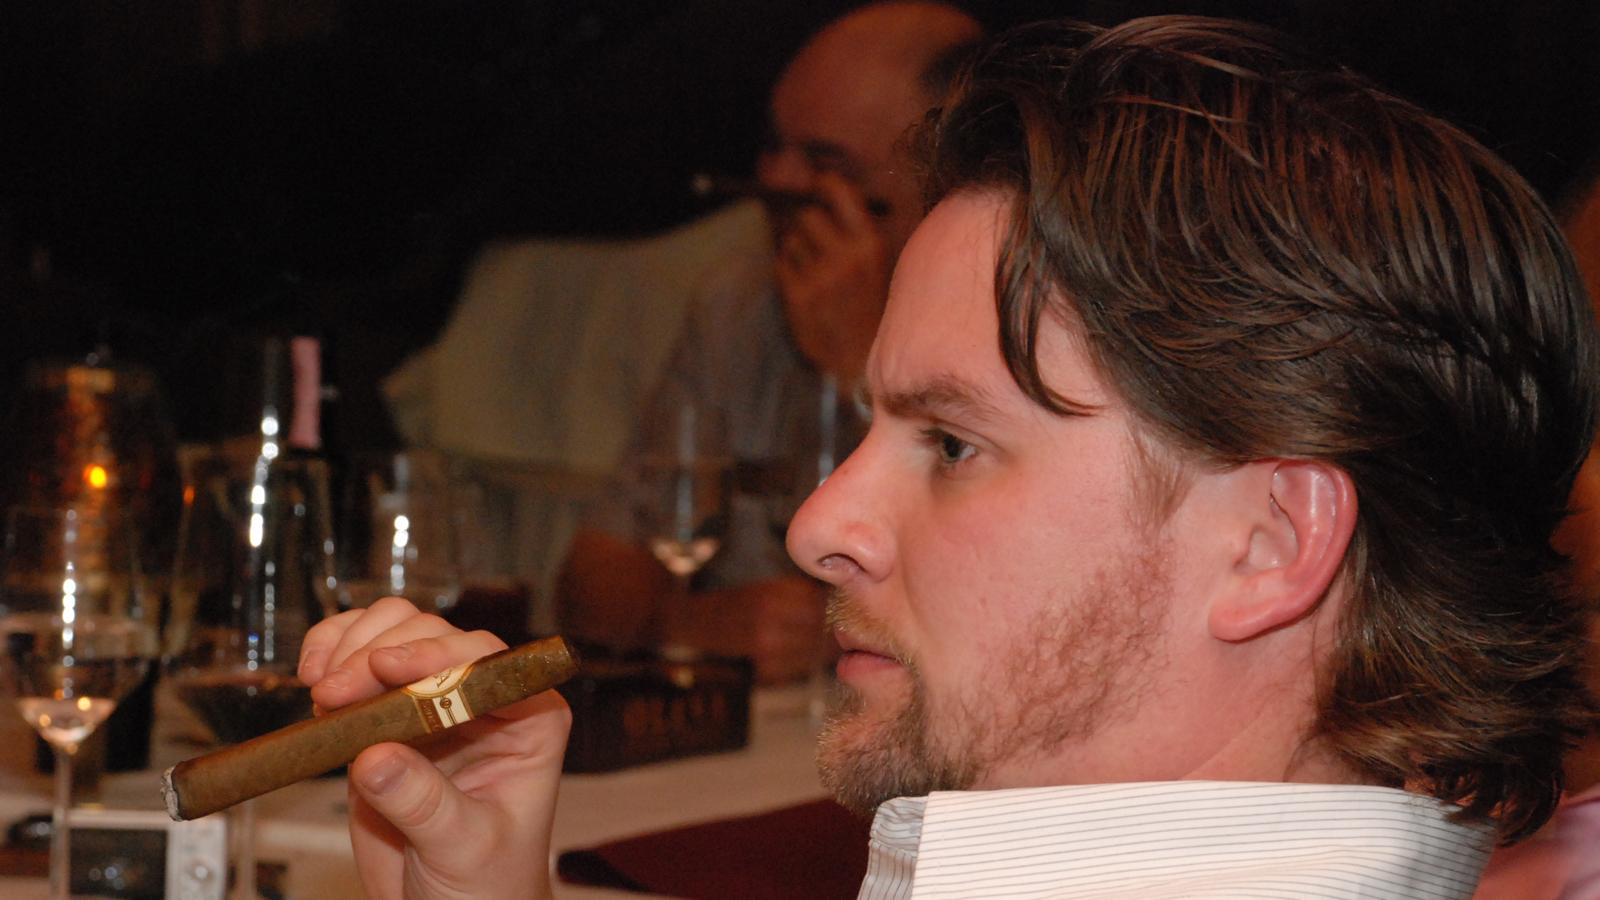 Sam Leccia, General Cigar Co. Part Ways